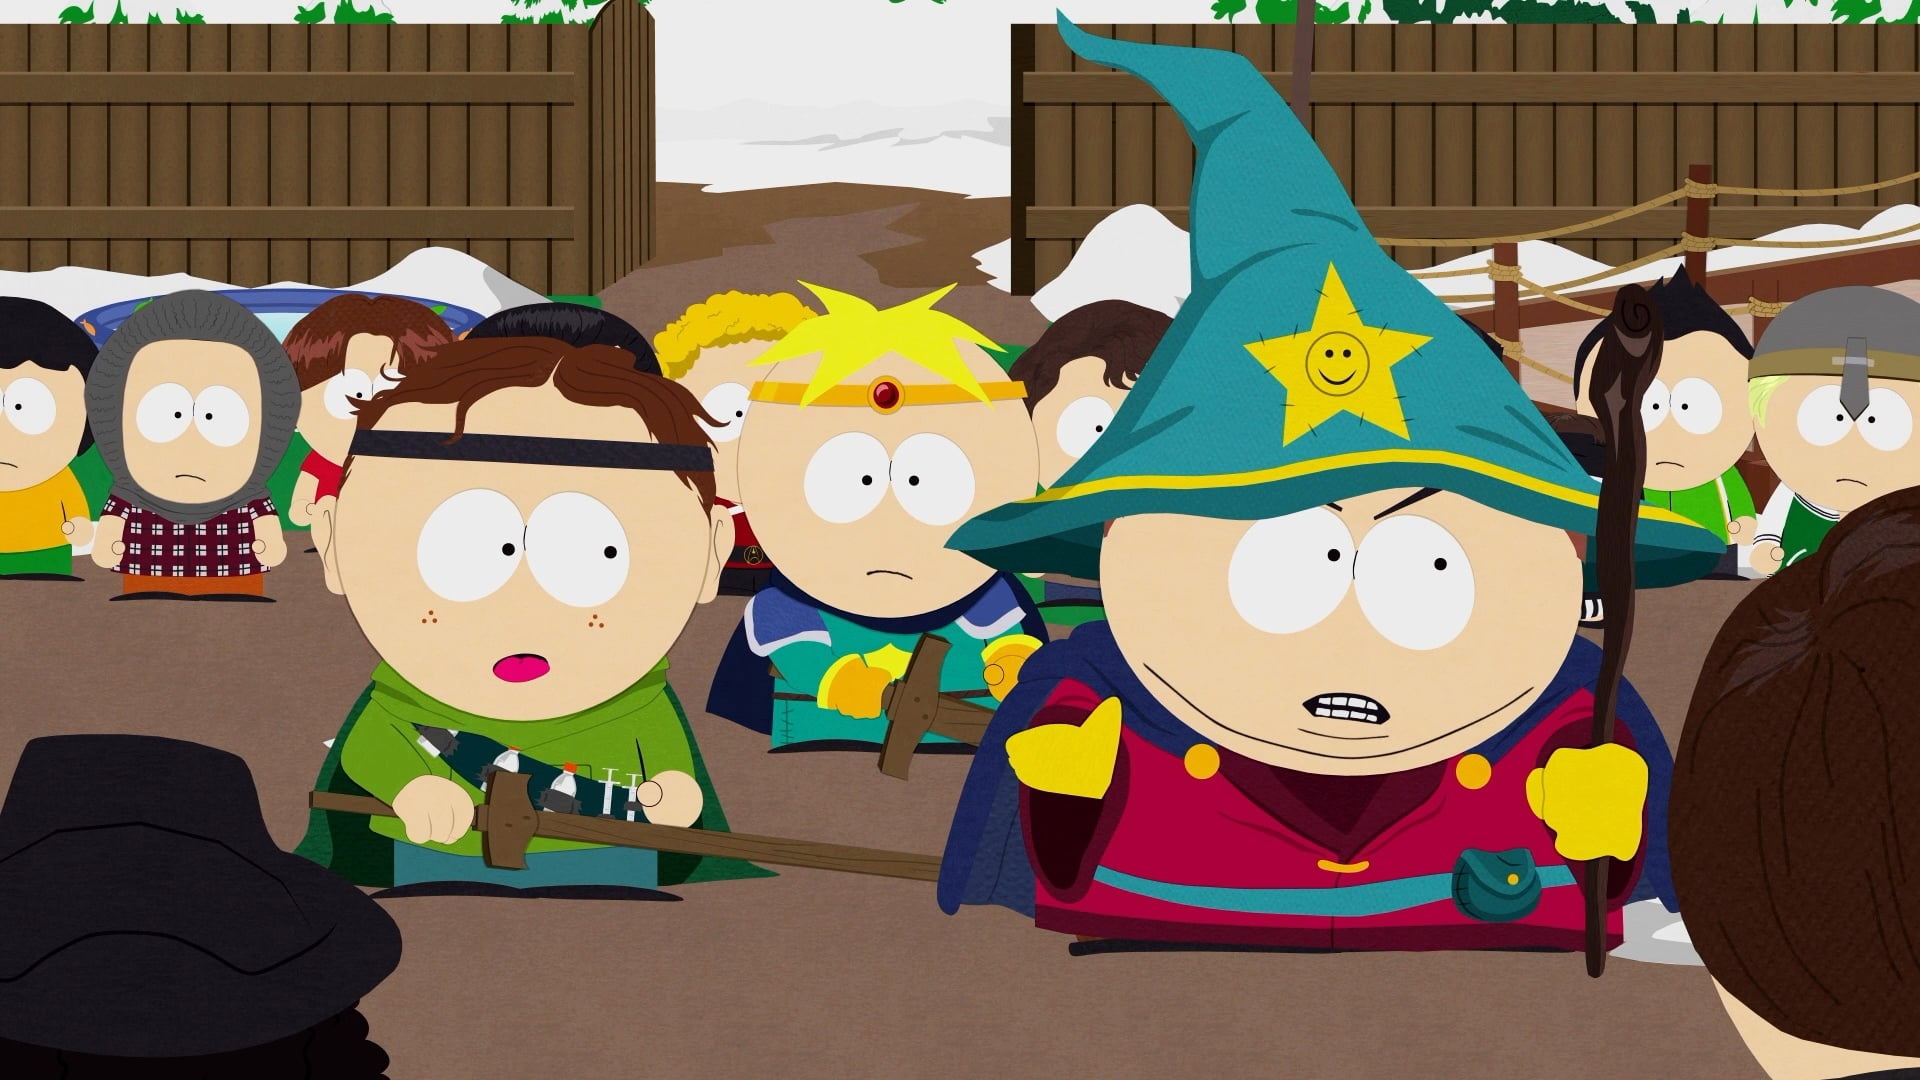 Old fashioned south park 91